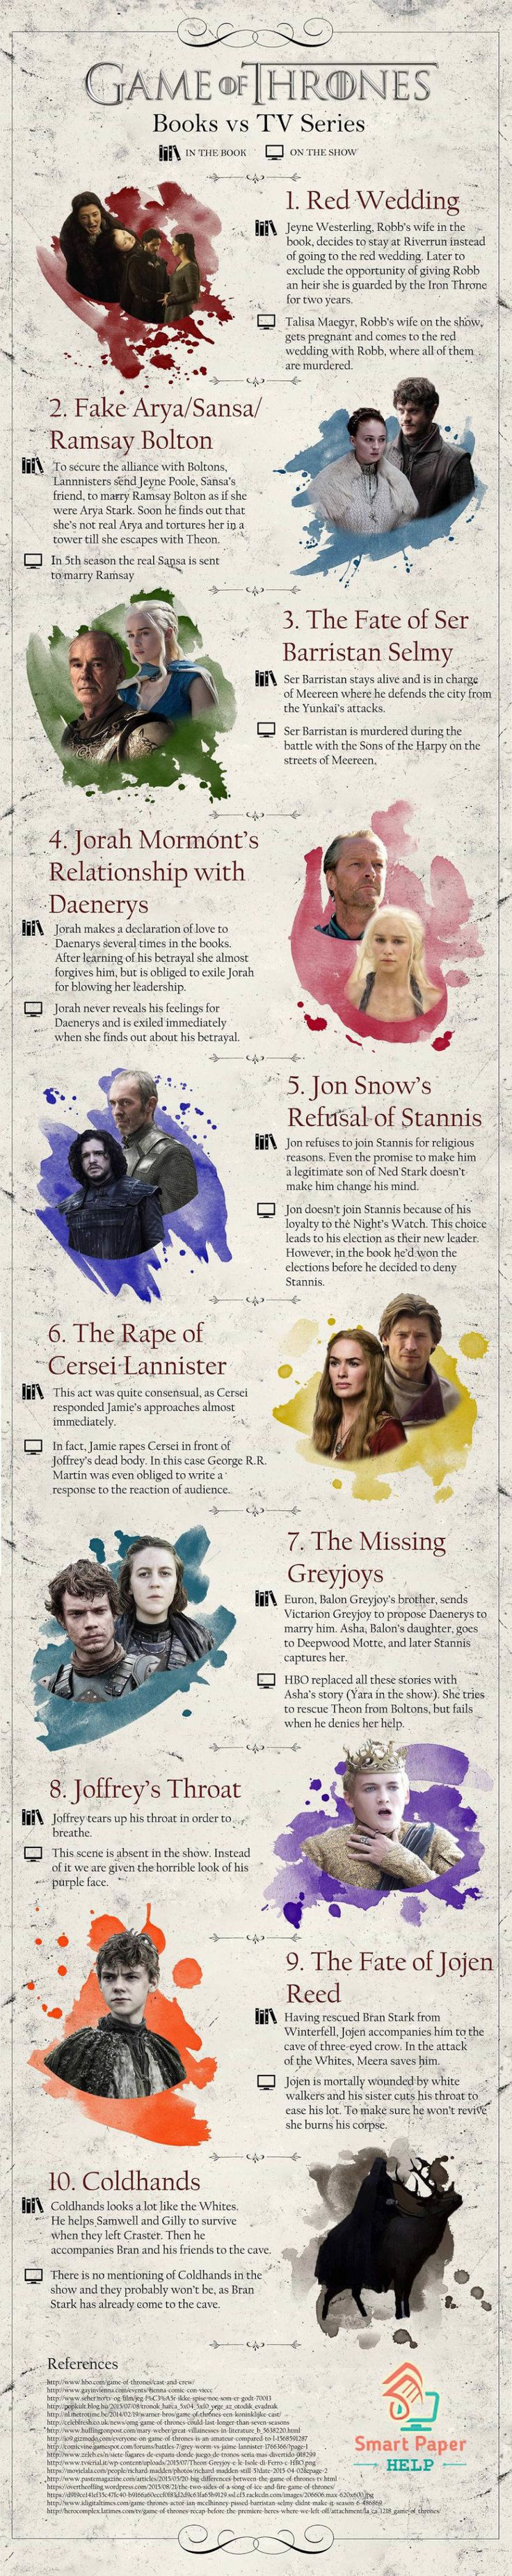 A Game of Thrones – 10 differences between #books and TV series